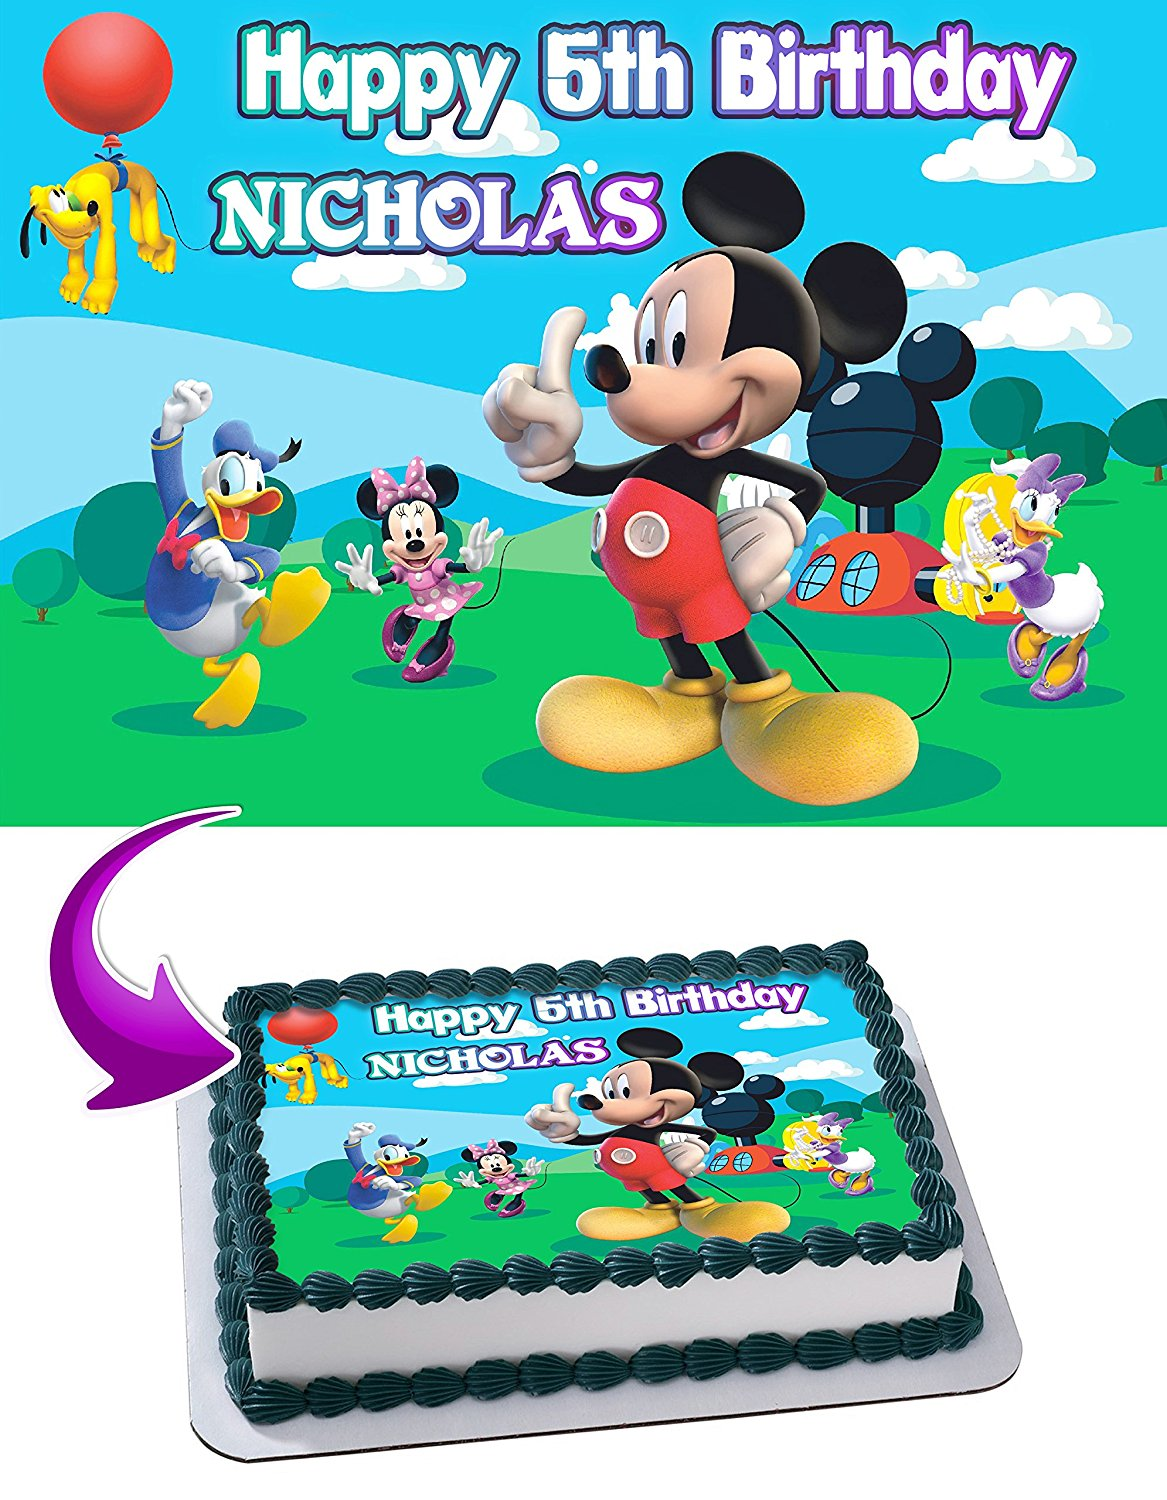 19b3314190de Get Quotations · Mickey Mouse Clubhouse Birthday Cake Personalized Cake  Toppers Edible Frosting Photo Icing Sugar Paper A4 Sheet